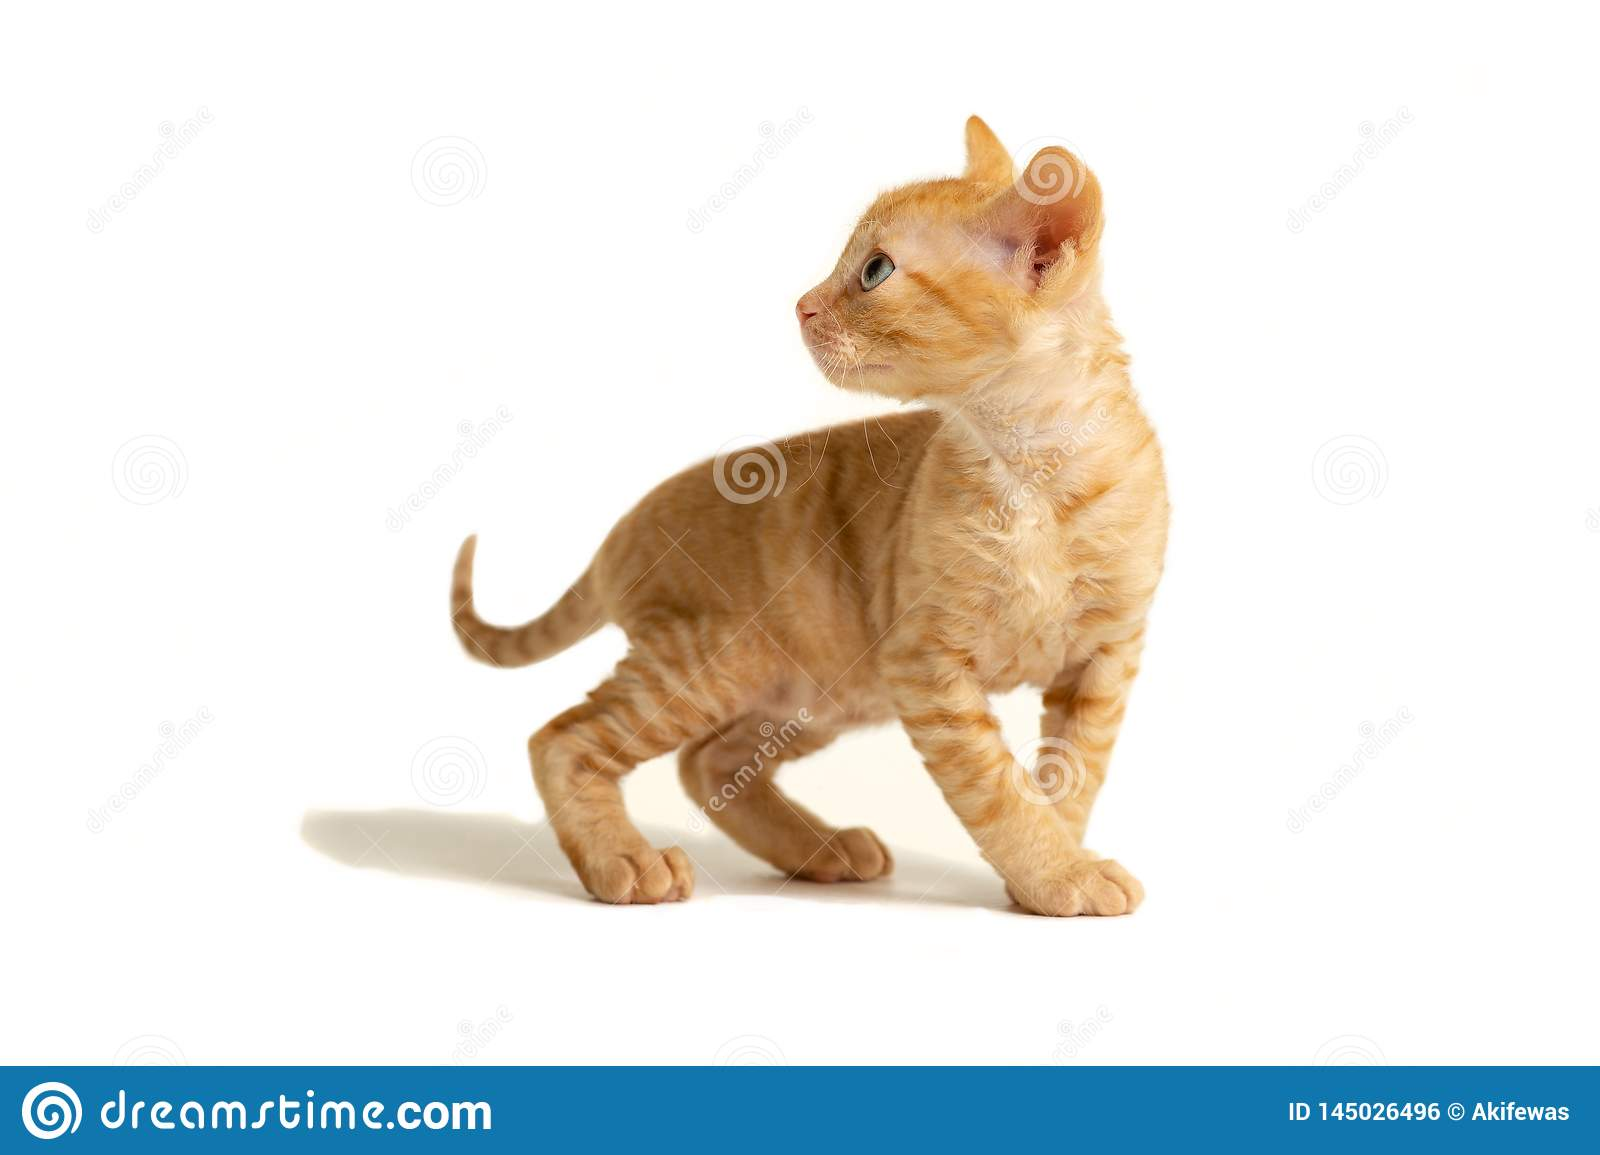 Little kitten Ural Rex stands and looks back, isolated on a white background